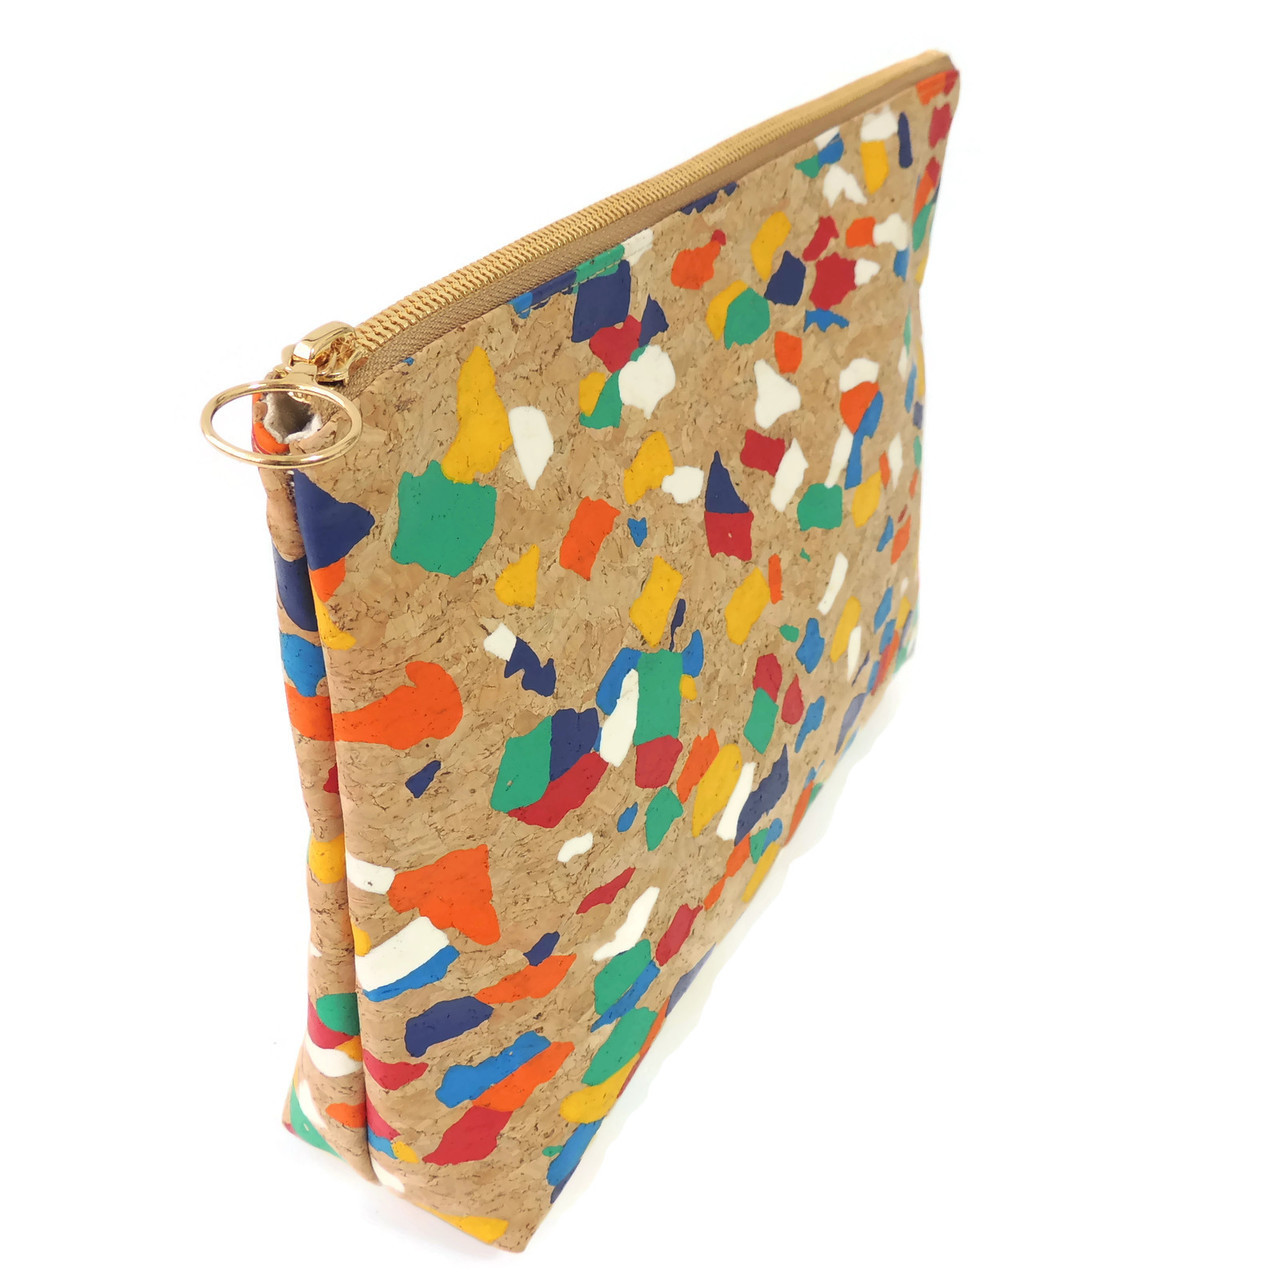 Carryall Clutch in Paint Palette Cork